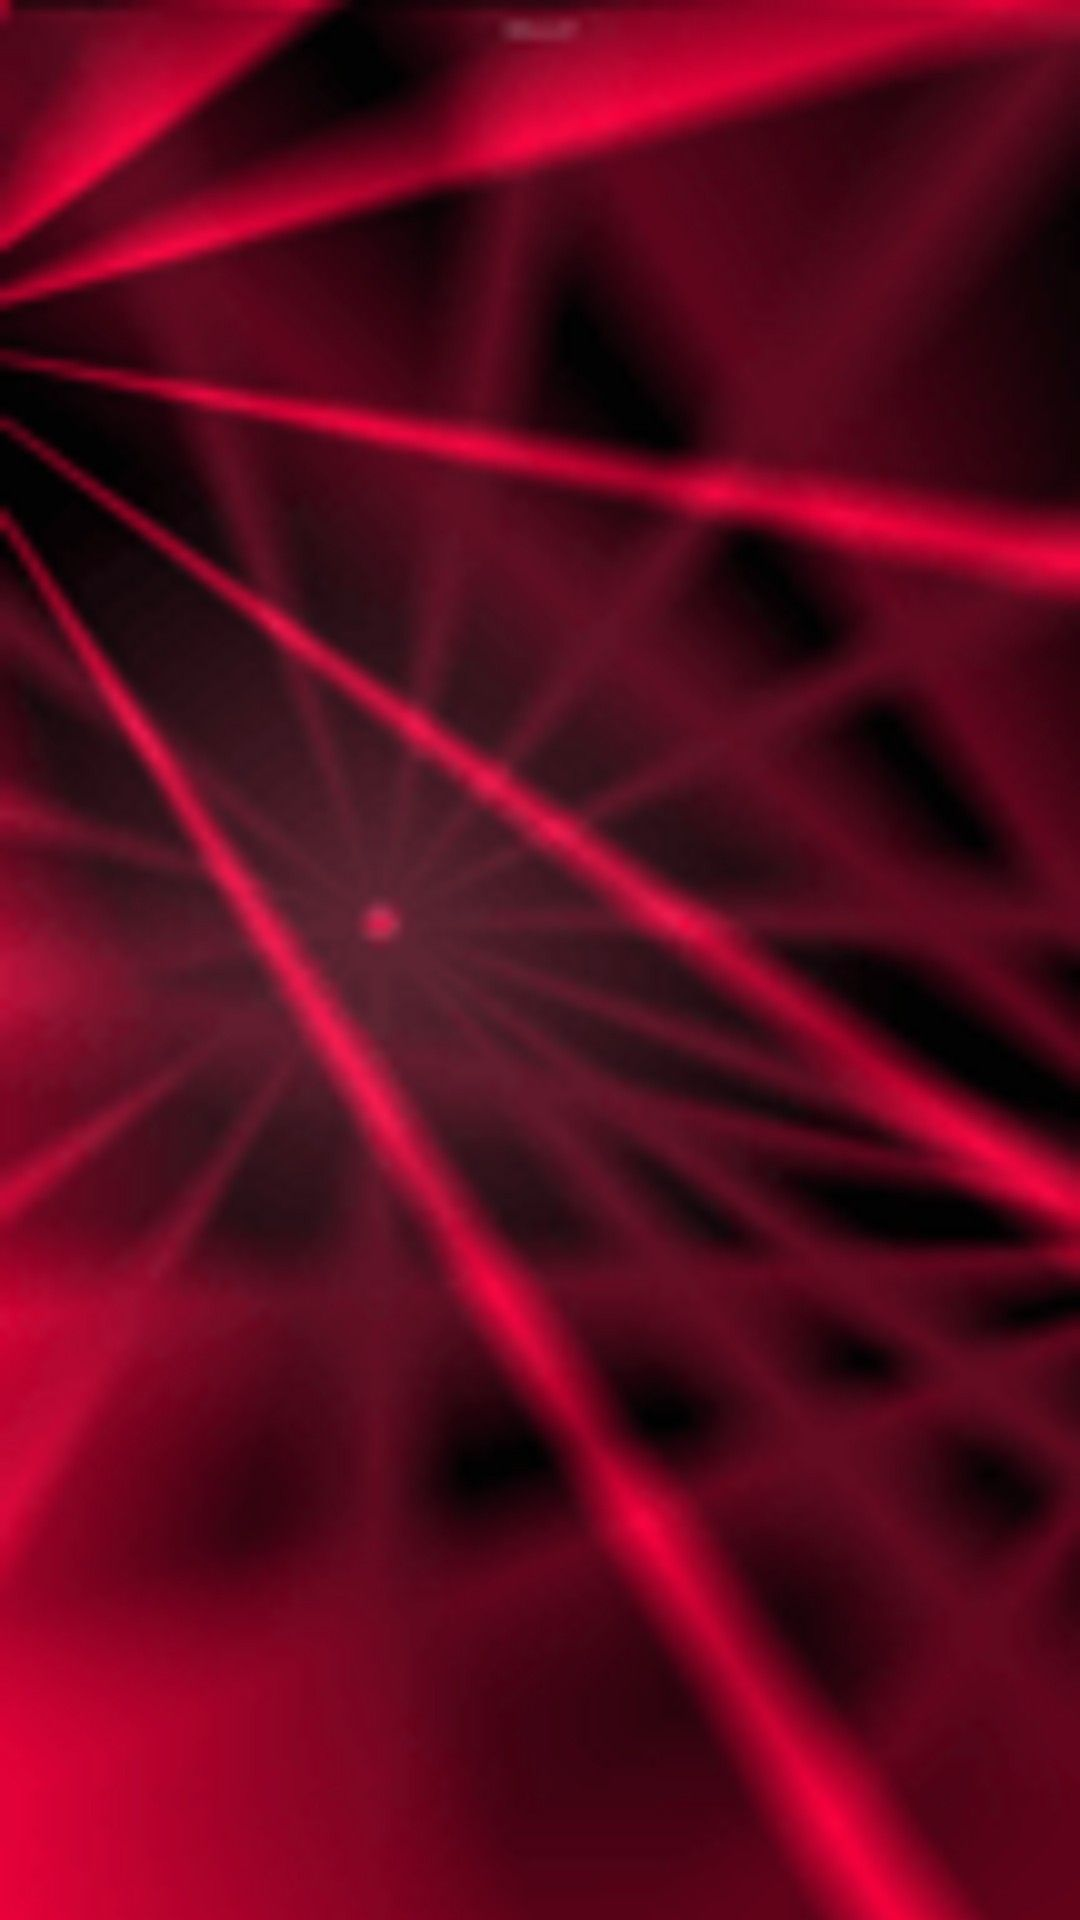 Light Red Laser 1080 X 1920 Wallpapers Available For Free Download